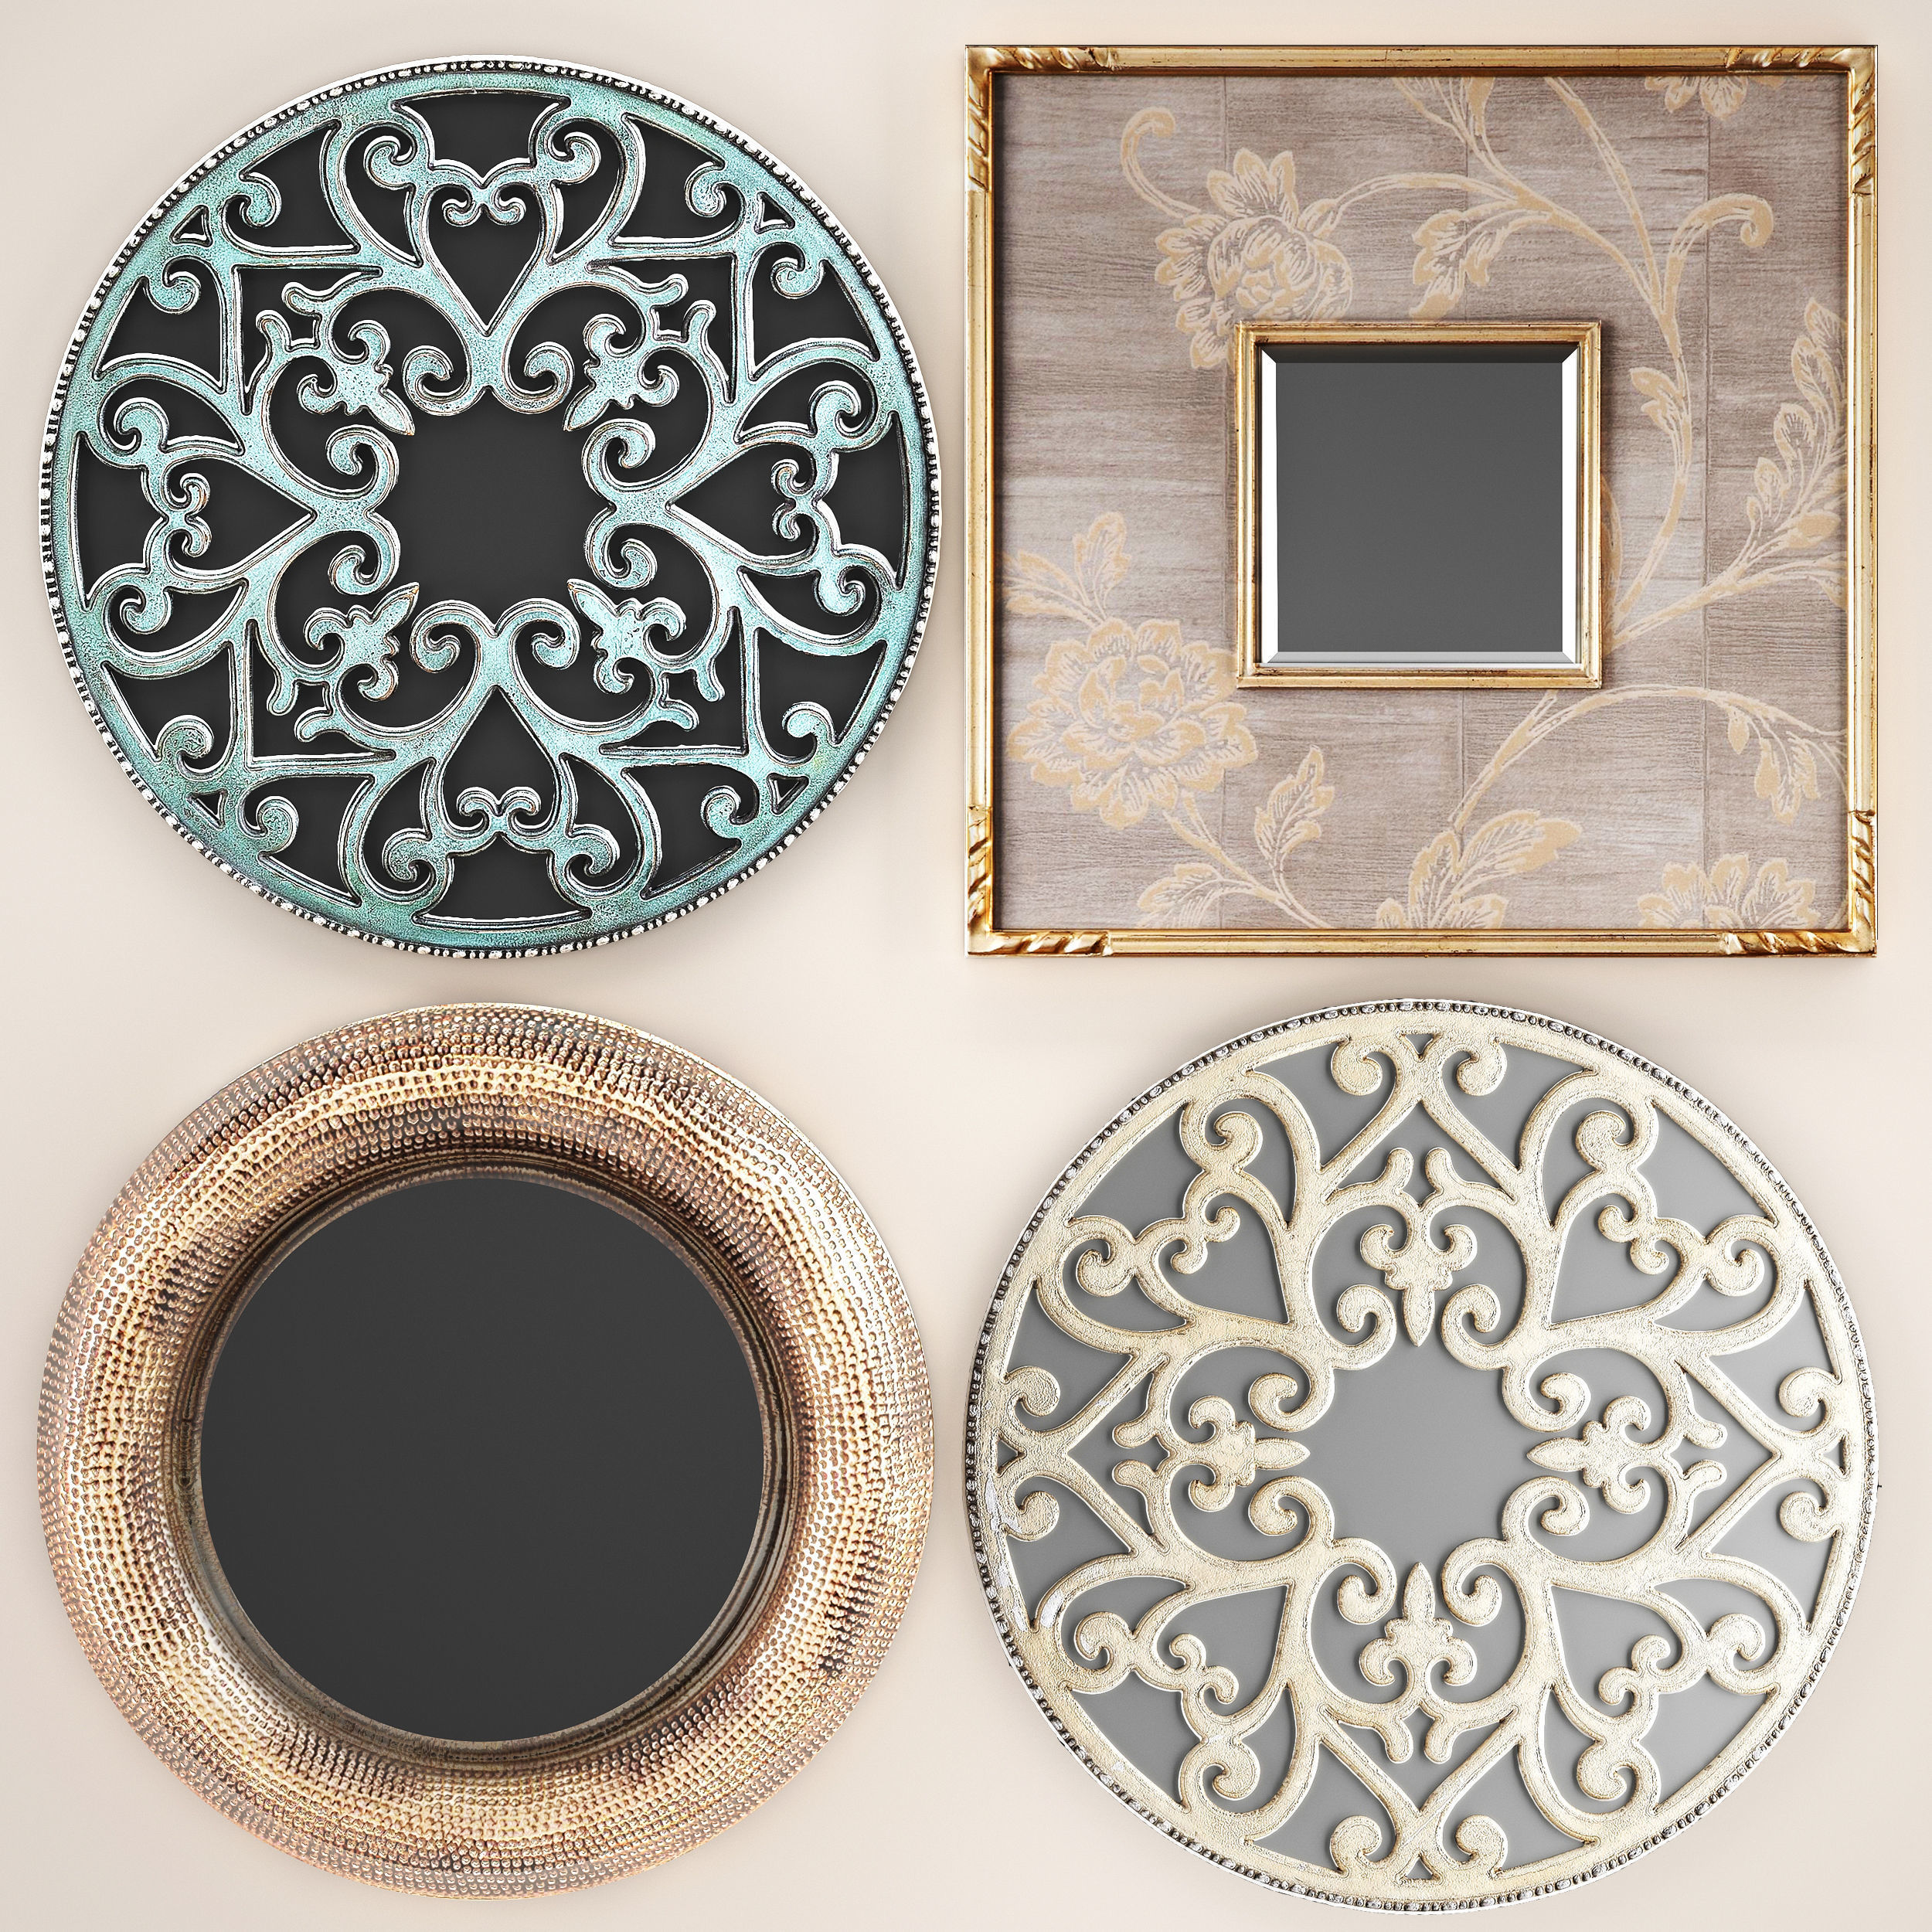 Collection of decorative mirrors 2